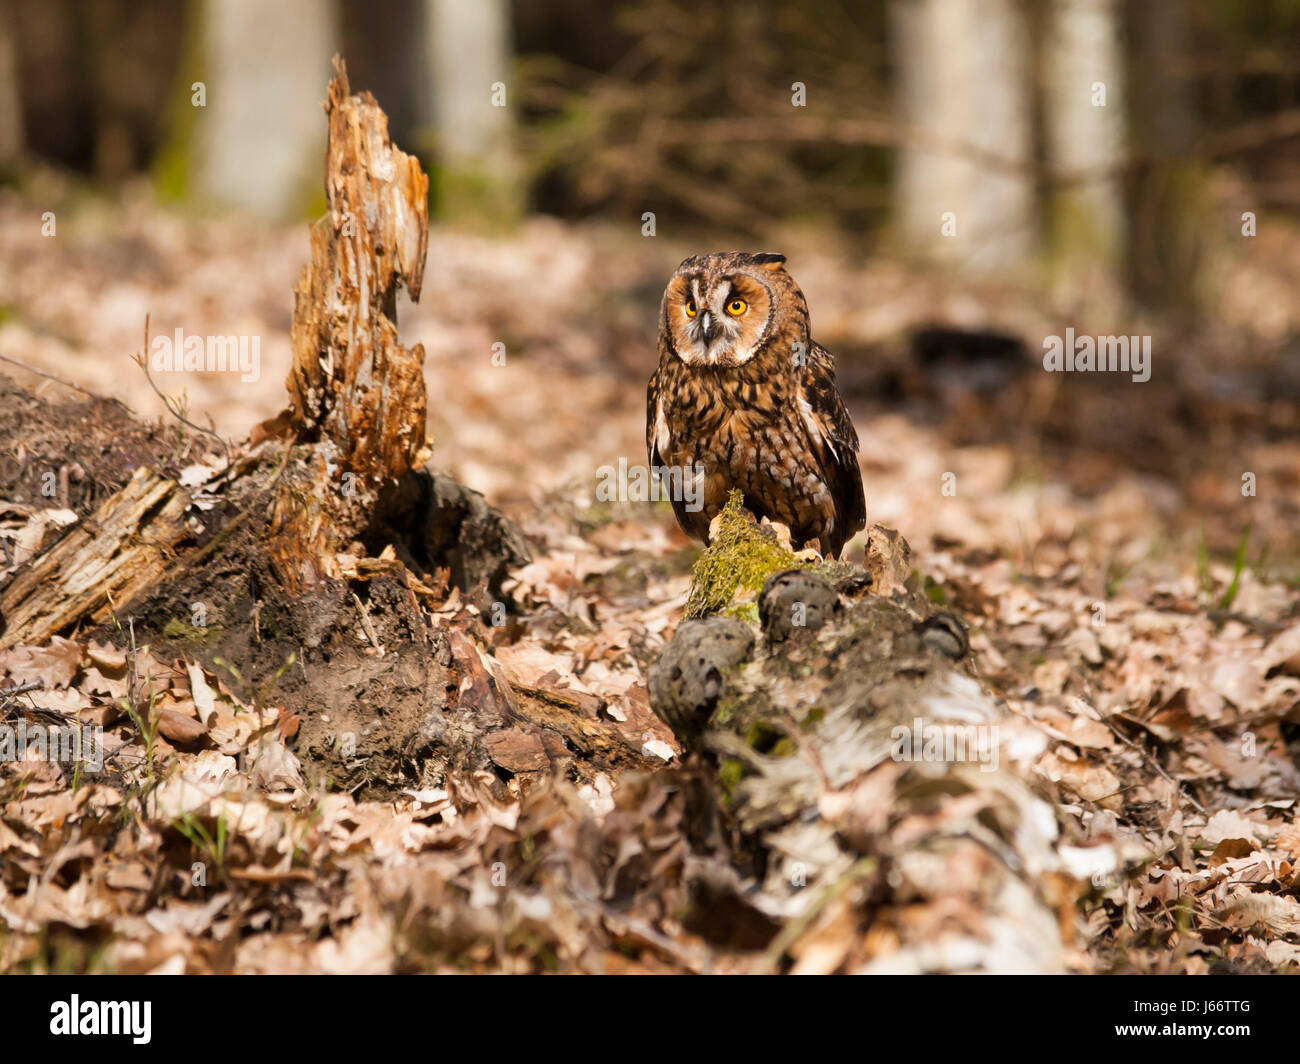 Long-eares owl siting on stump in forest - Asio otus - Stock Image